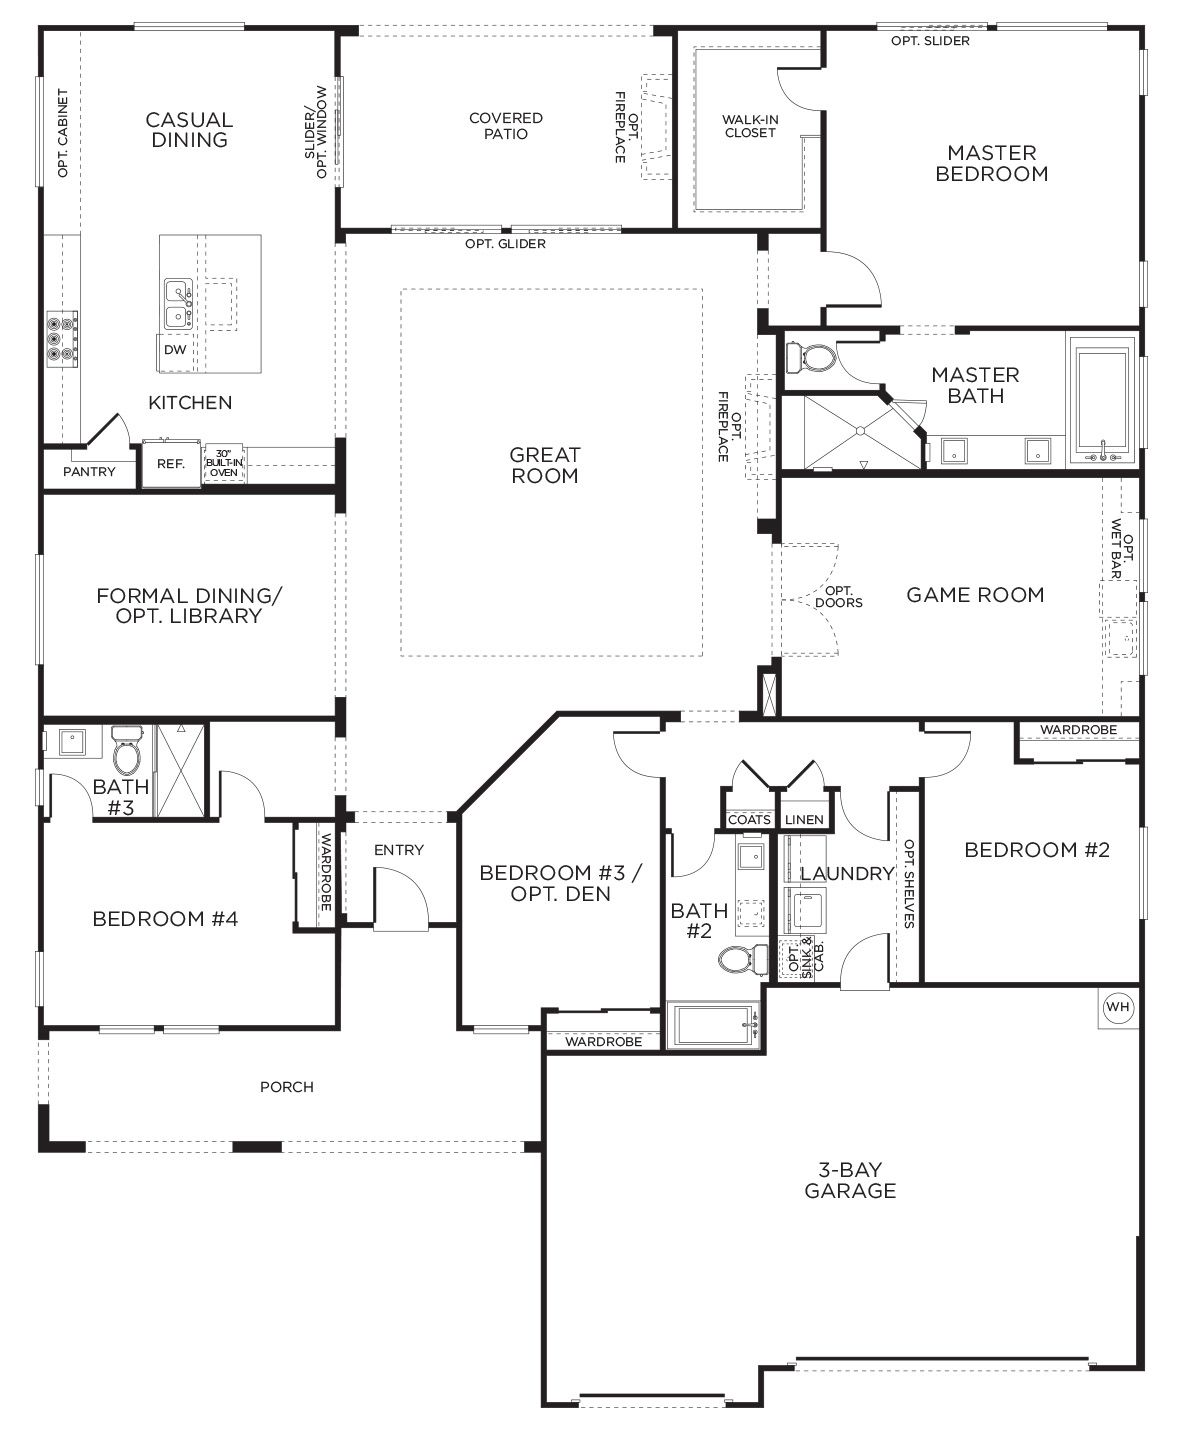 this layout with extra rooms. Single Story Floor Plans | One ... on designing a home, office building floor plan, create your own floor plan, designing a room plan, designing a garage floor, construction floor plan, blueprints floor plan, design your own floor plan, customize your own floor plan, home improvement floor plan,